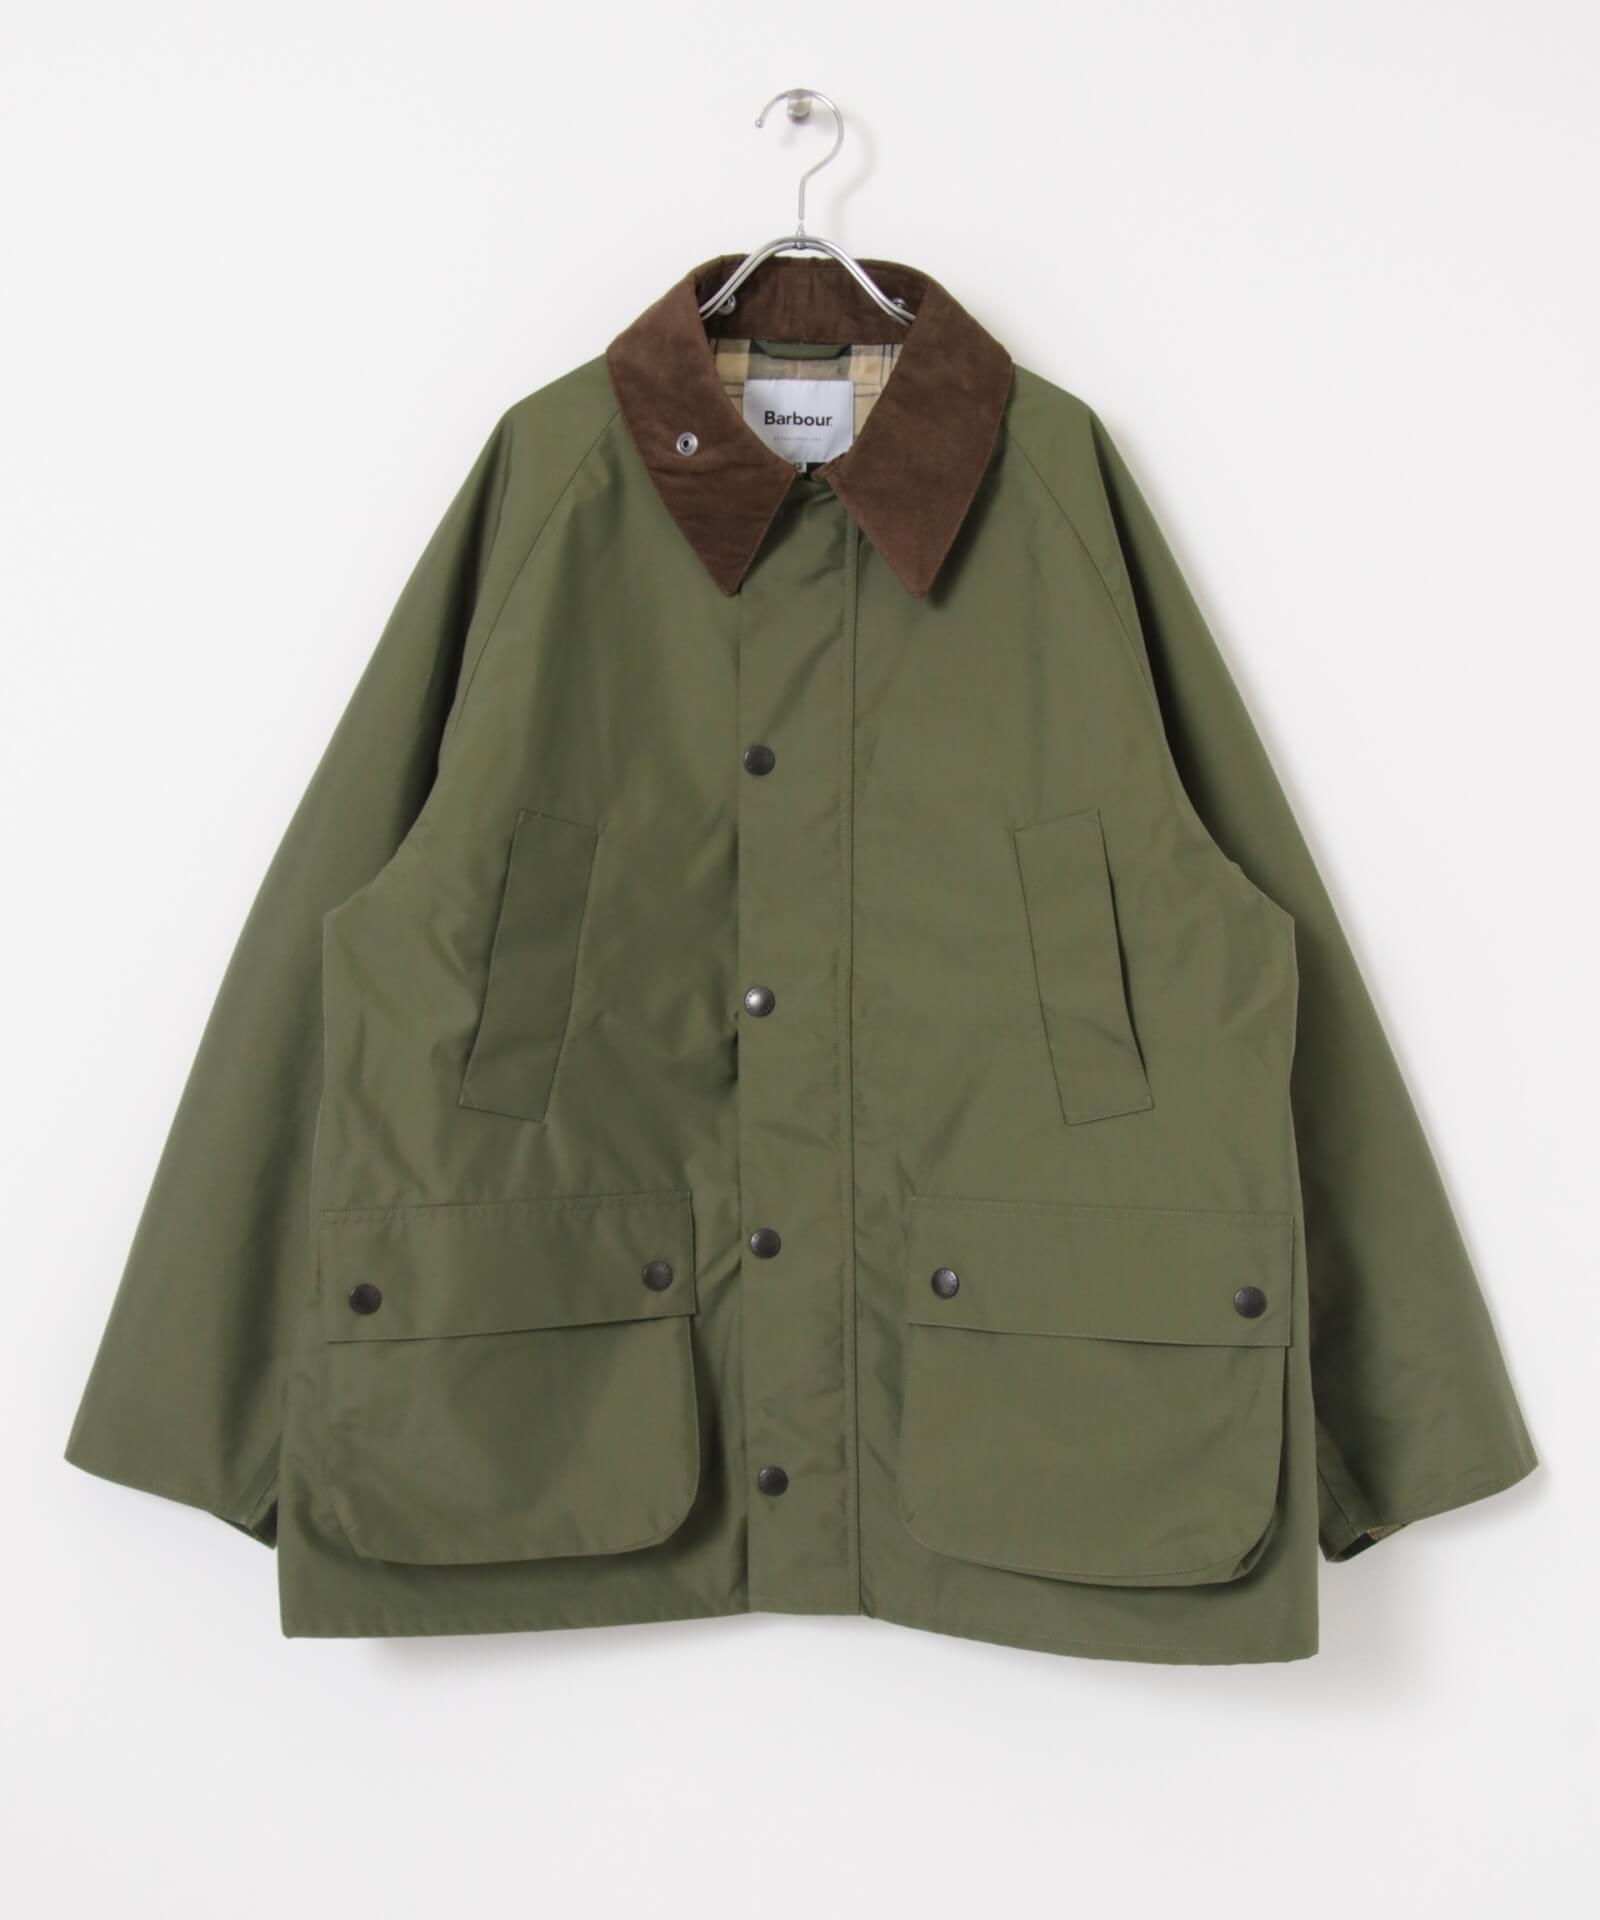 BarbourとworkahoLCのコラボアイテムが発売決定!OVER SIZE BEDALEモデルのジャケットが登場 life210913_urbs_barbour_4